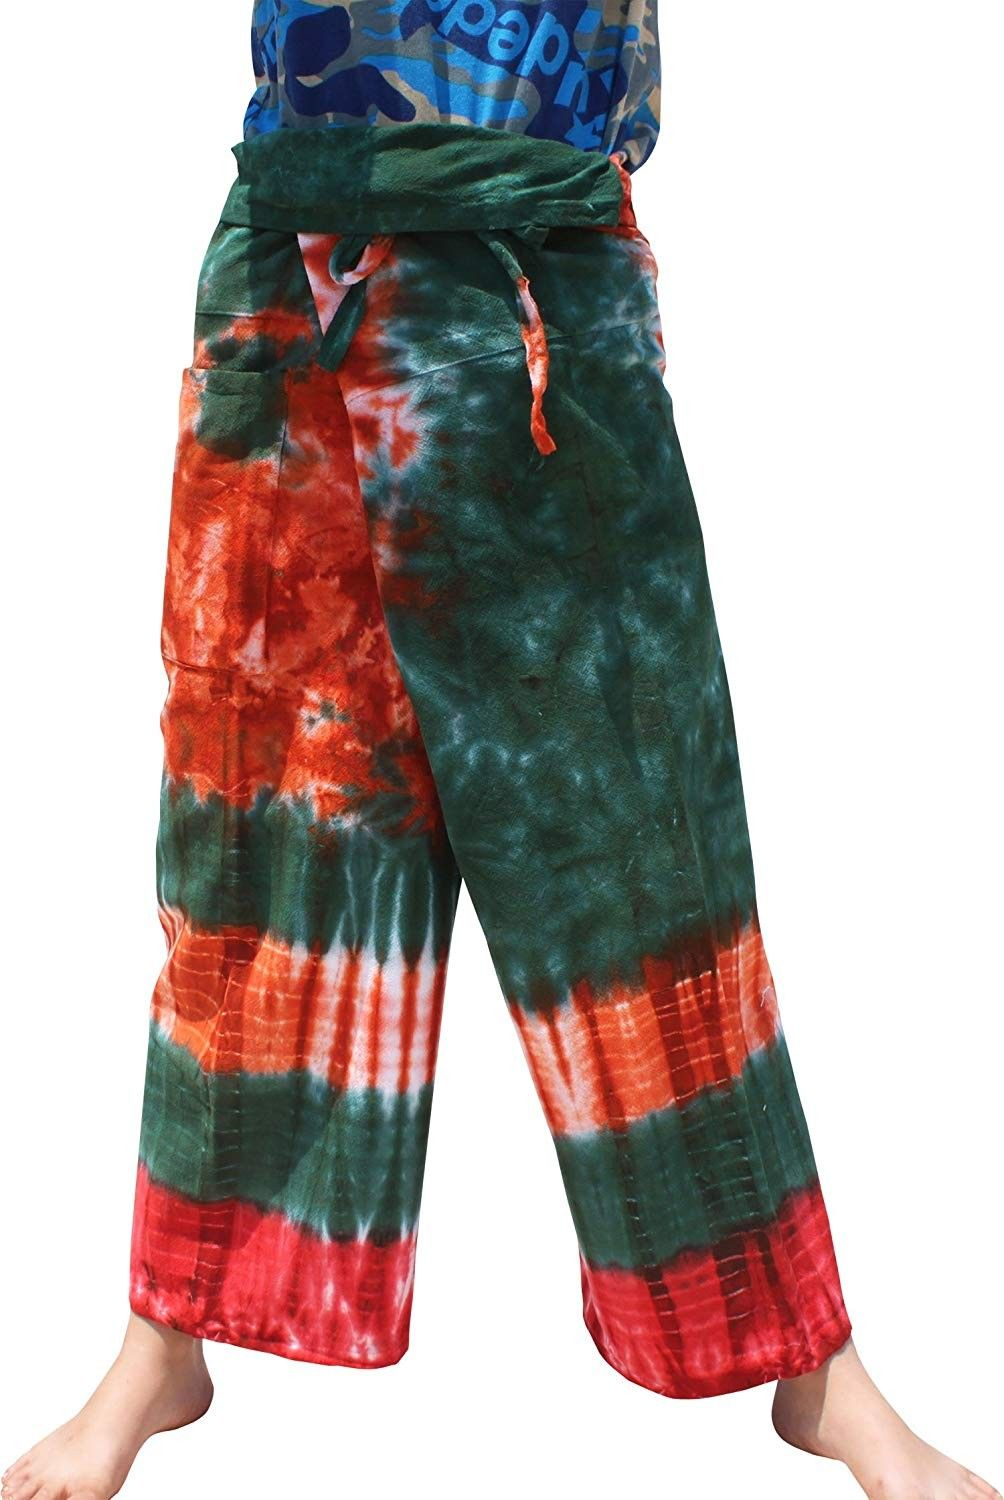 Thick Muang Cotton Thailand Fishermans Pants TieDyed Plus - Green Orange - CO18E8AEY00 - Sports & Fi...